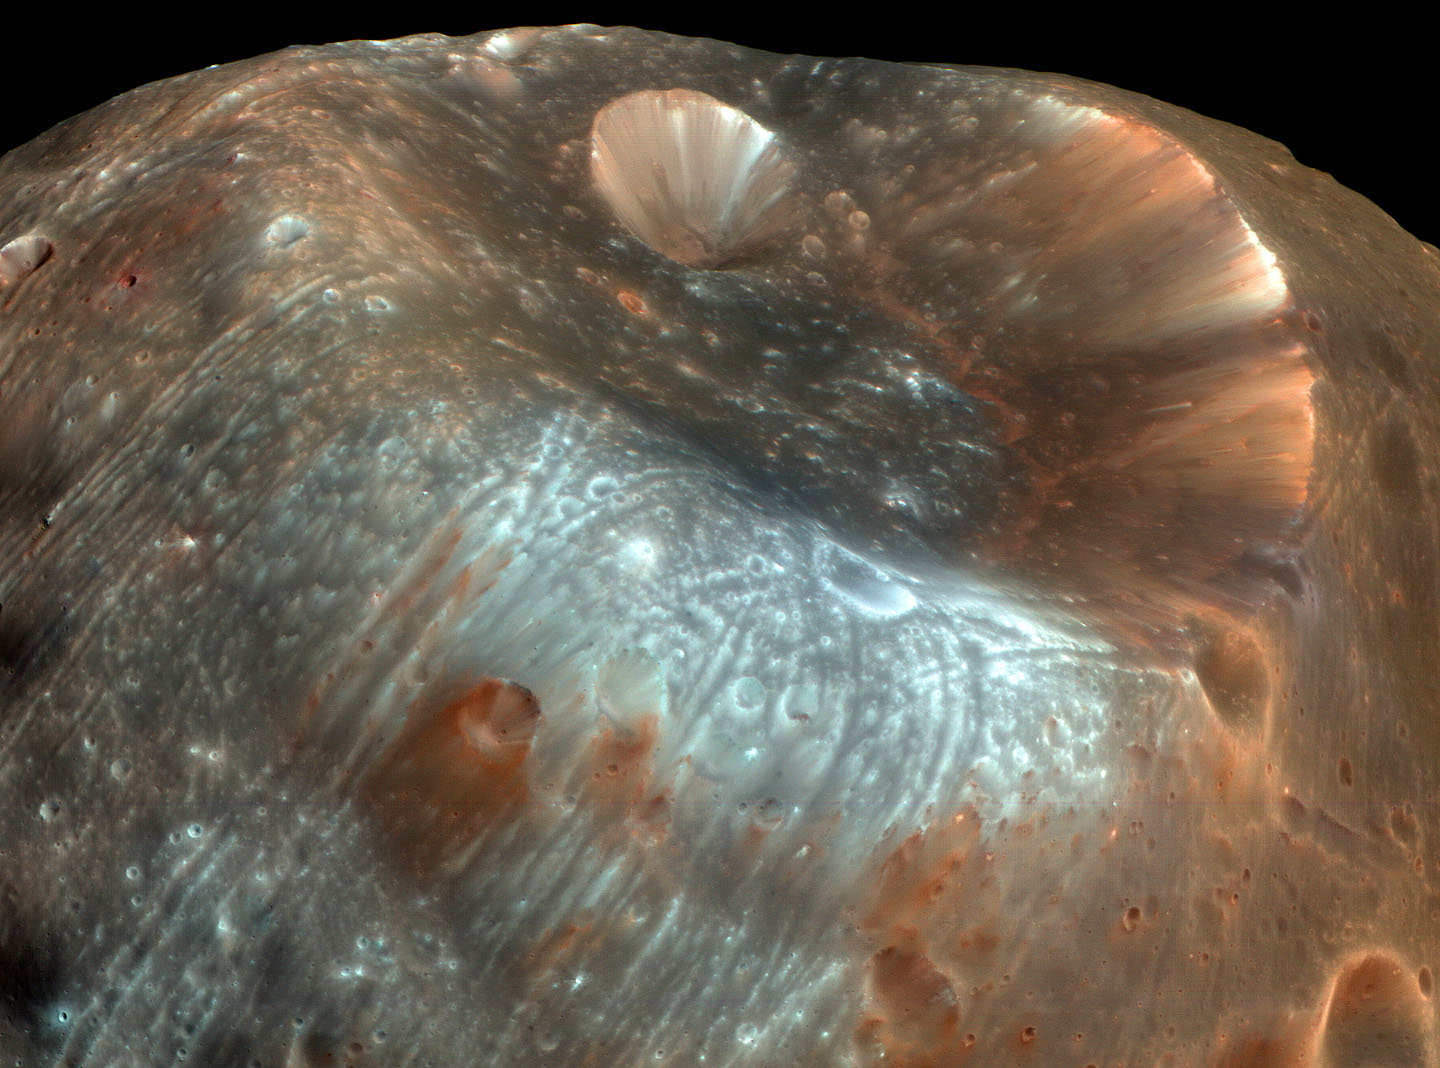 The streaked and stained surface of Phobos, with the Stickney crater shown in the center. - Image Credit: NASA/JPL/Mars Express